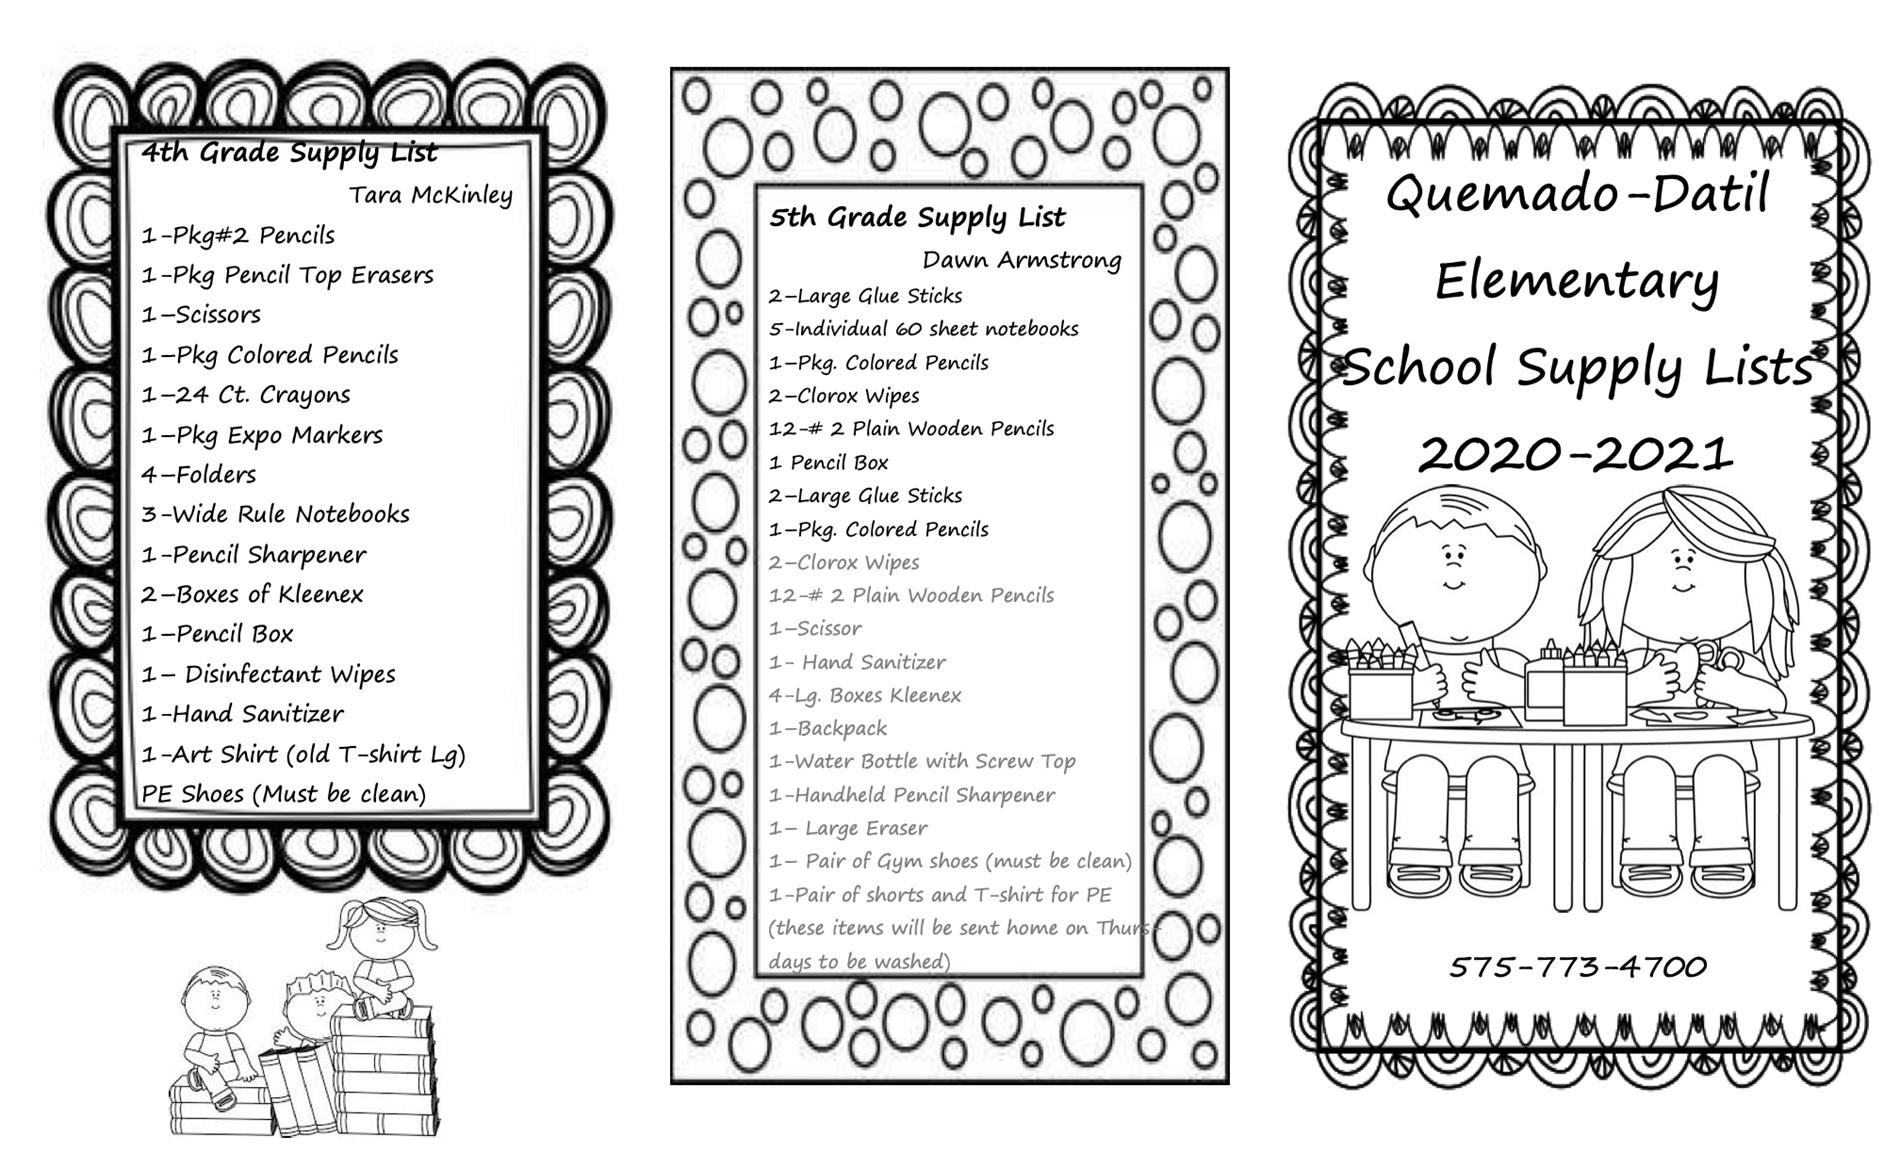 Quemado 5th & 6th grade supply list